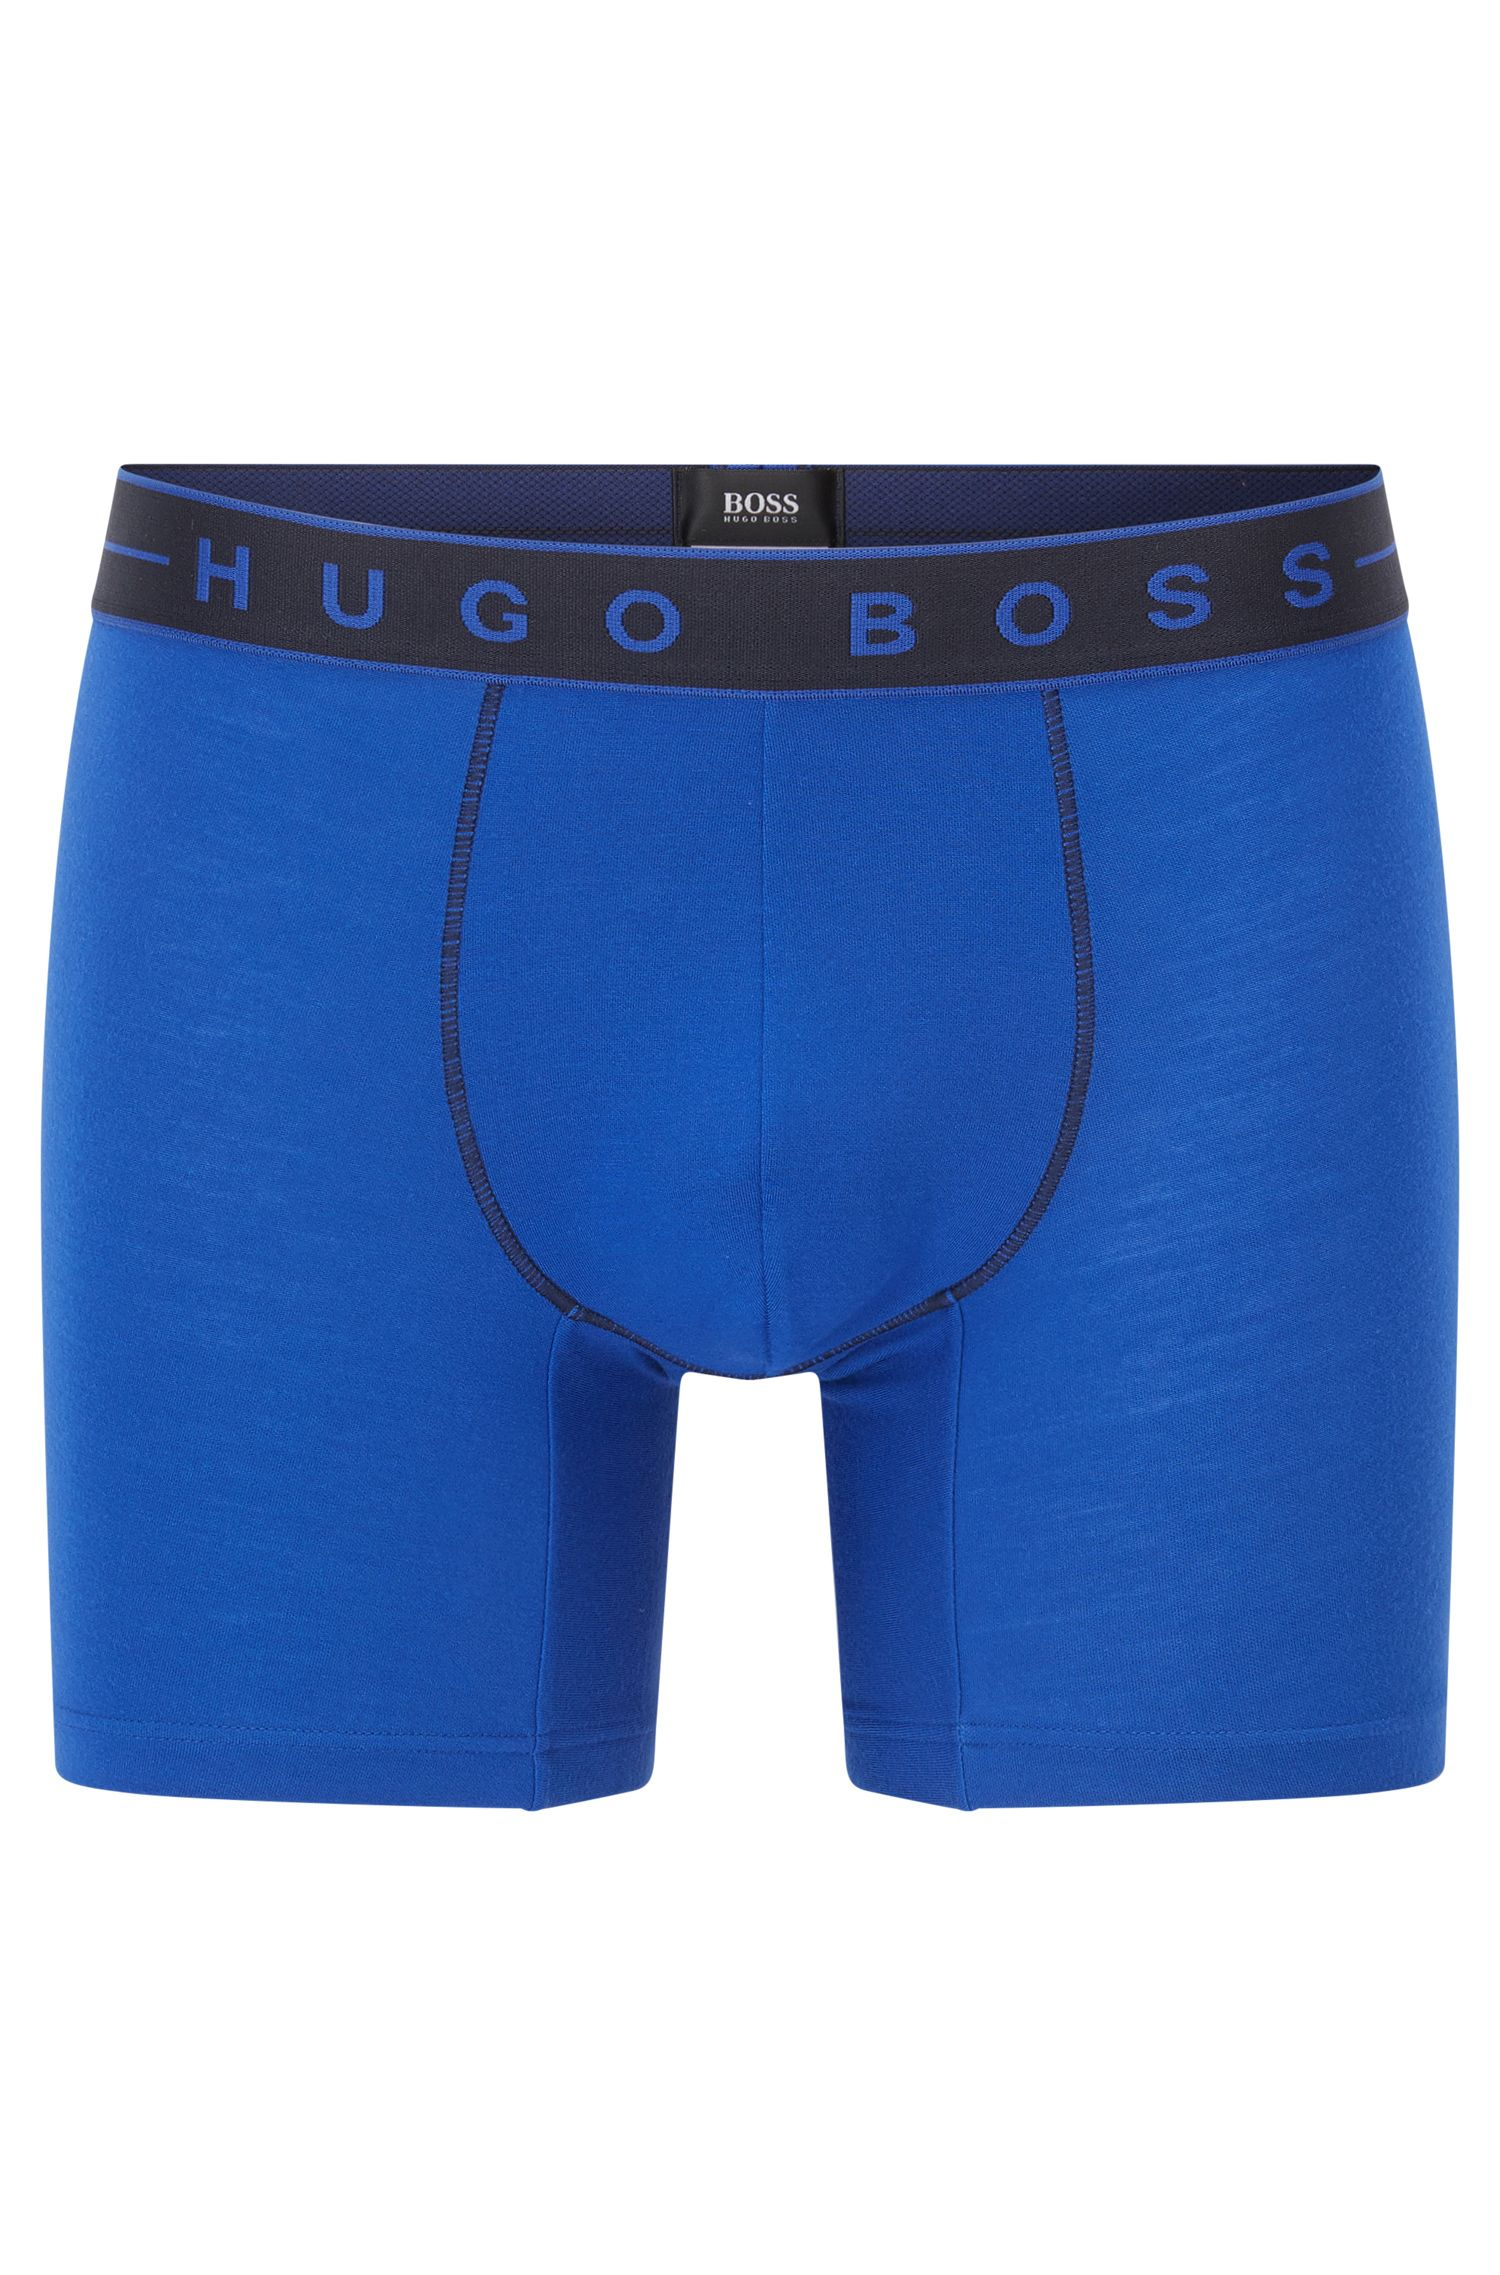 Boxer briefs in single jacquard